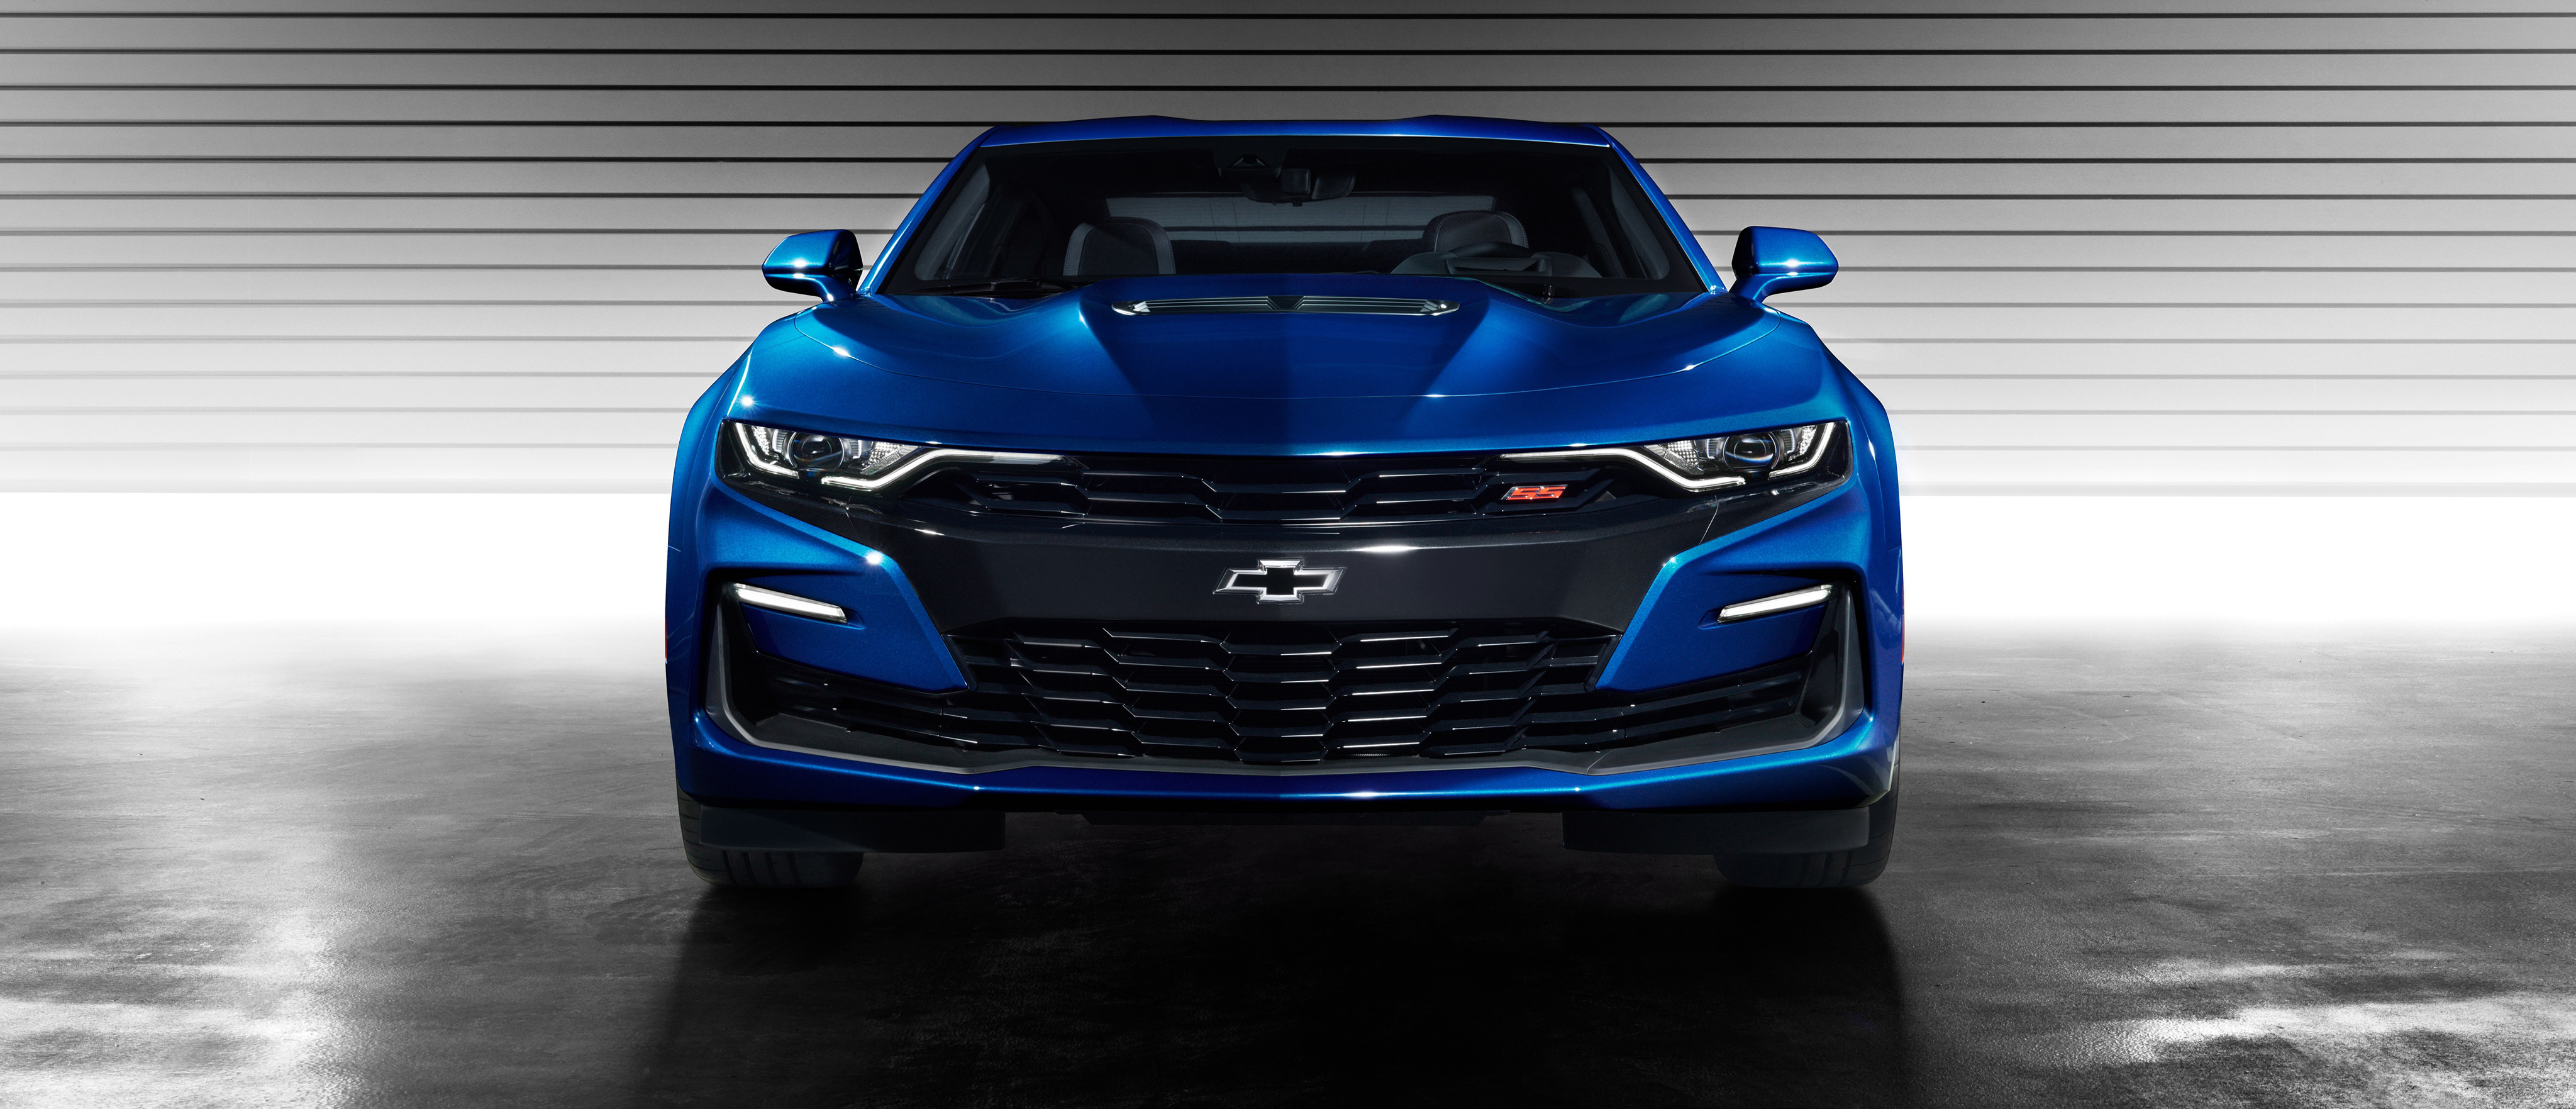 Chevrolet Camaro Ss 2018 Front Hd Cars 4k Wallpapers Images Backgrounds Photos And Pictures